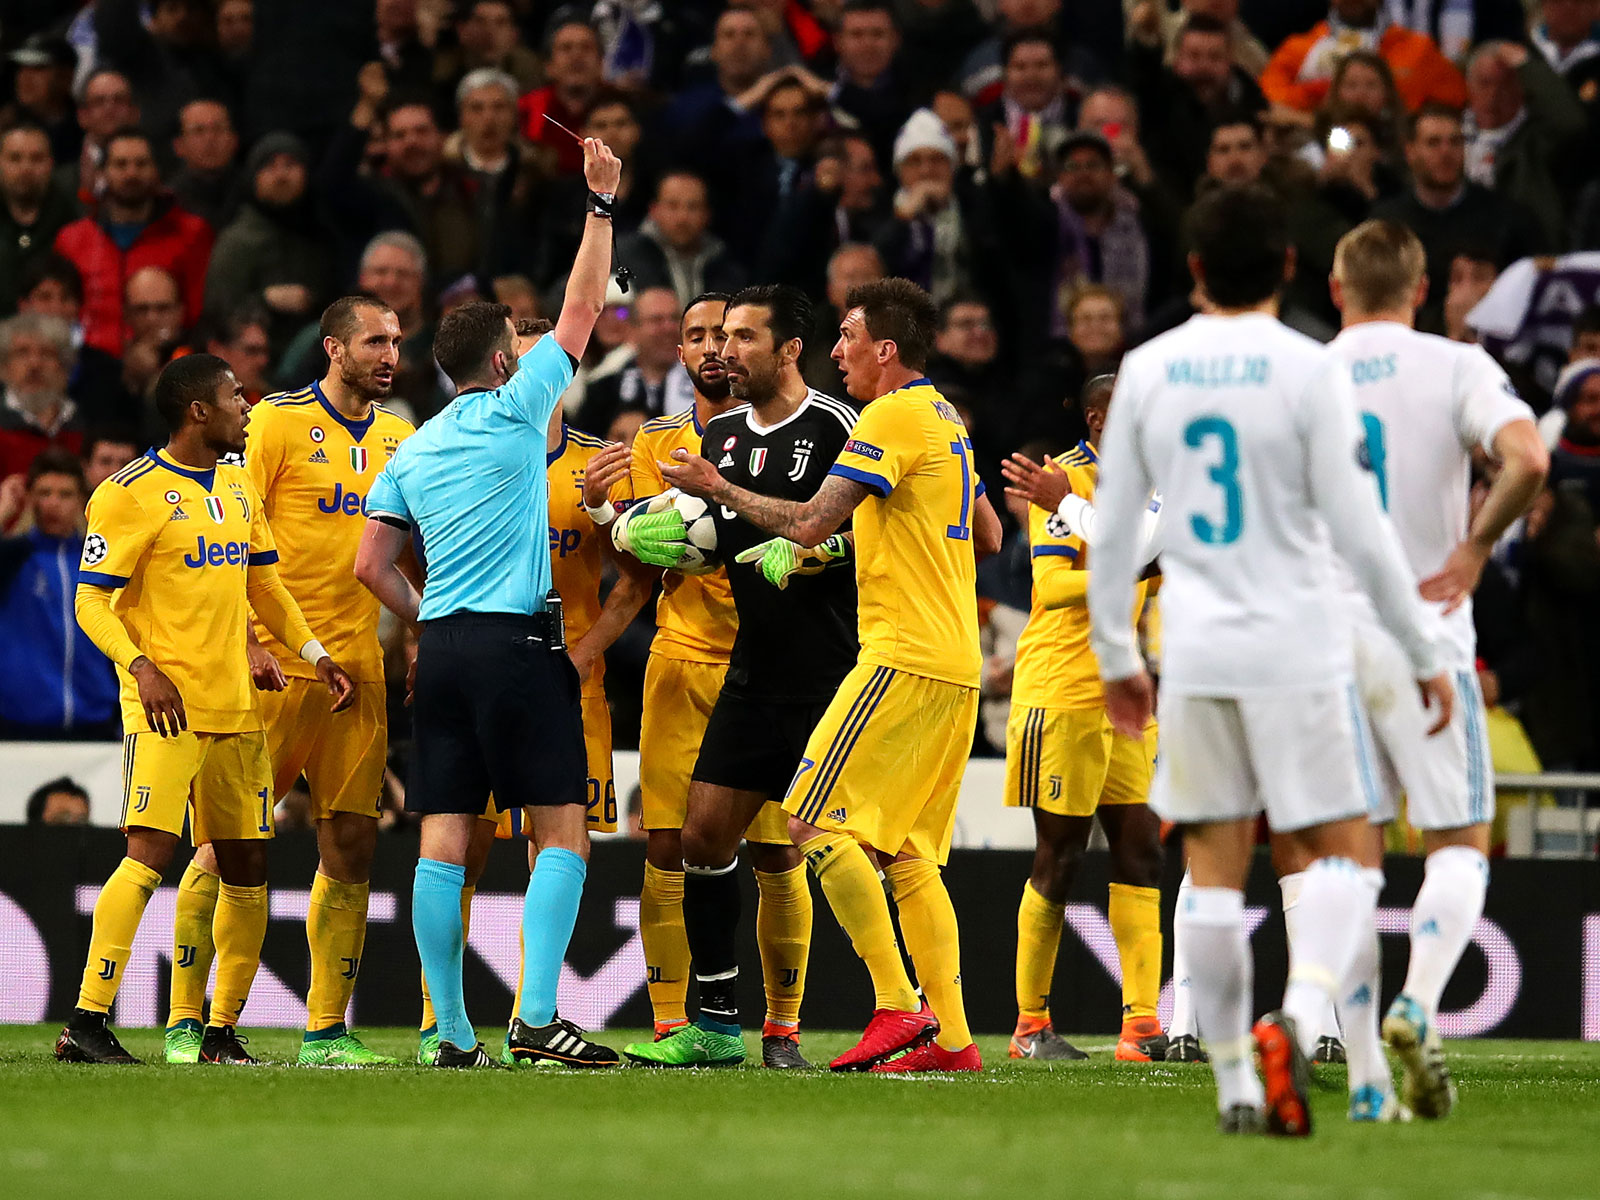 Gianluigi Buffon is sent off vs. Real Madrid in the Champions League